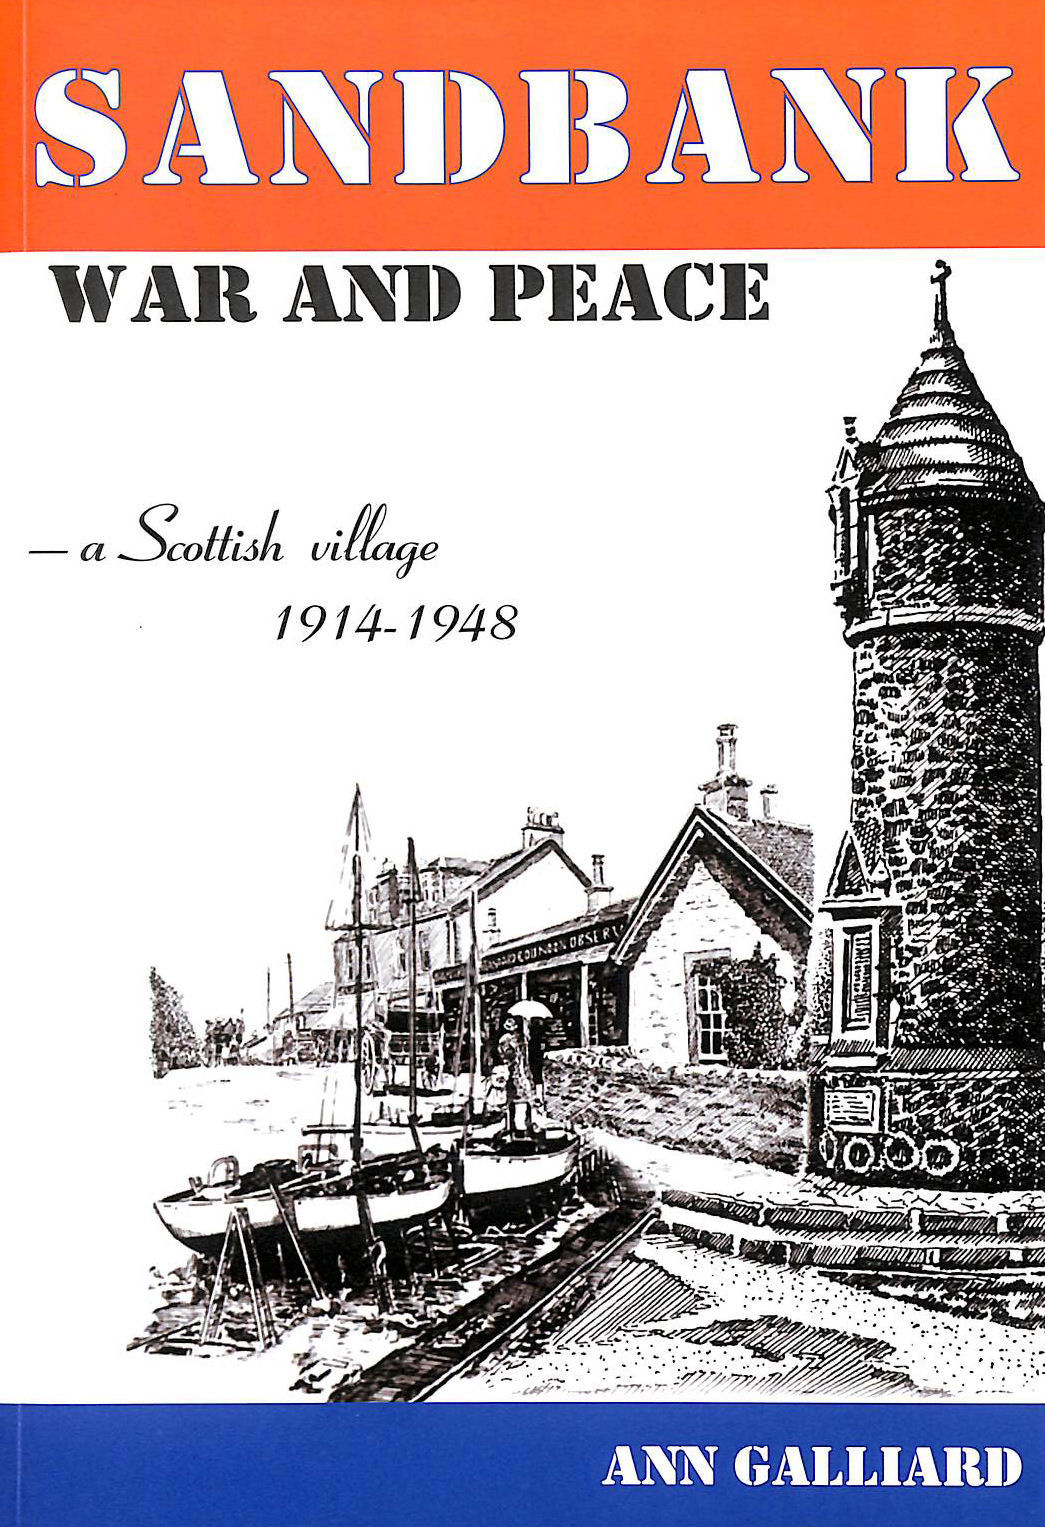 Image for Sandbank - War and Peace: A Scottish Village 1914-1948